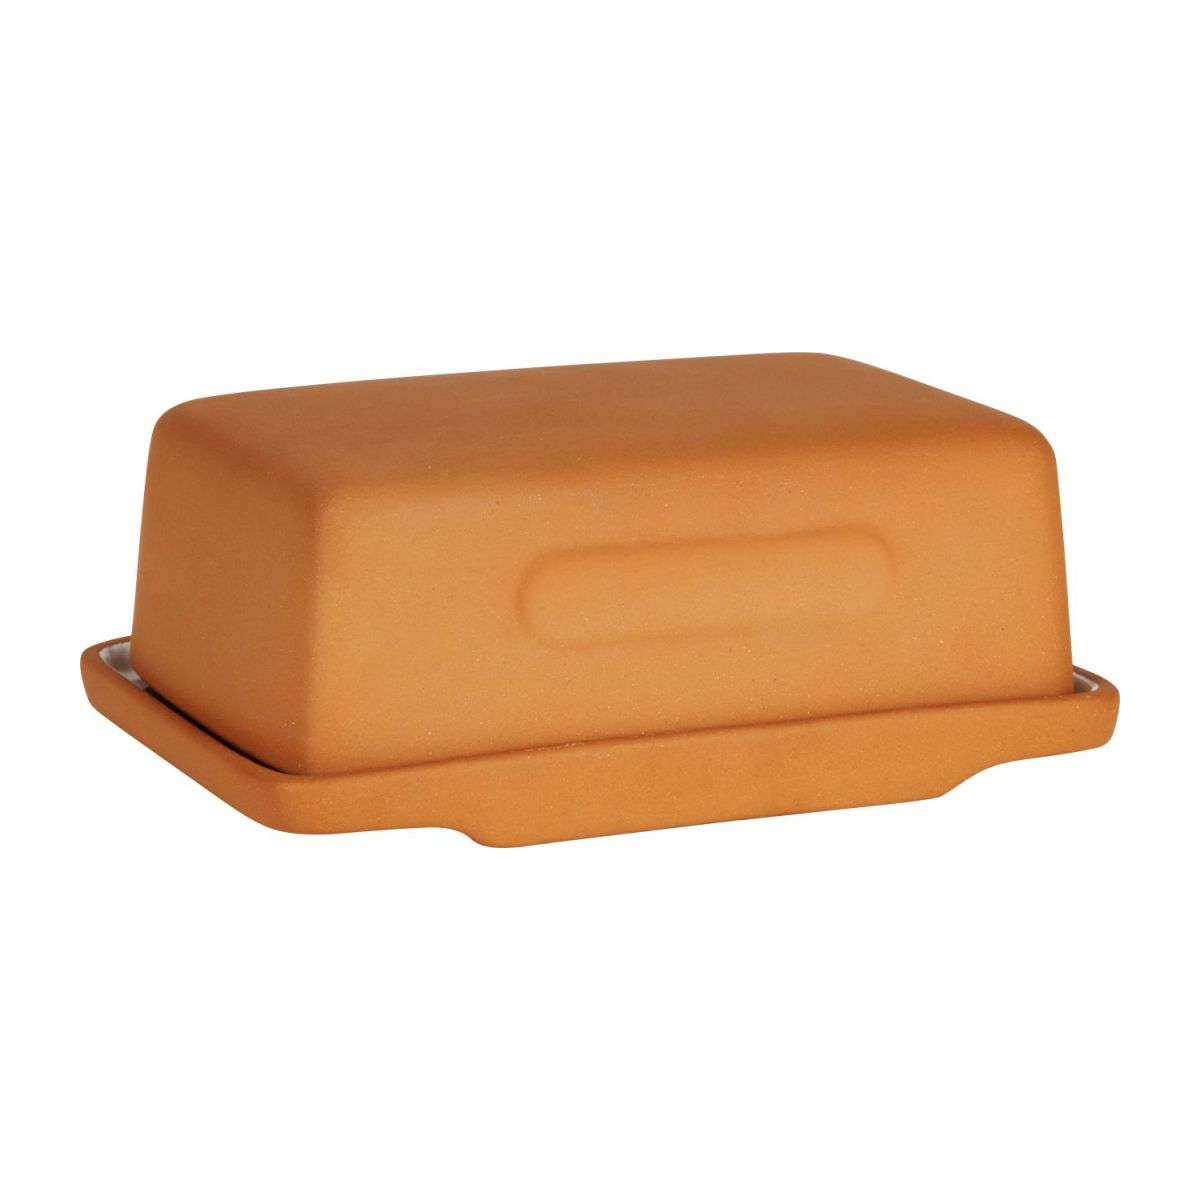 Butter dish n°1